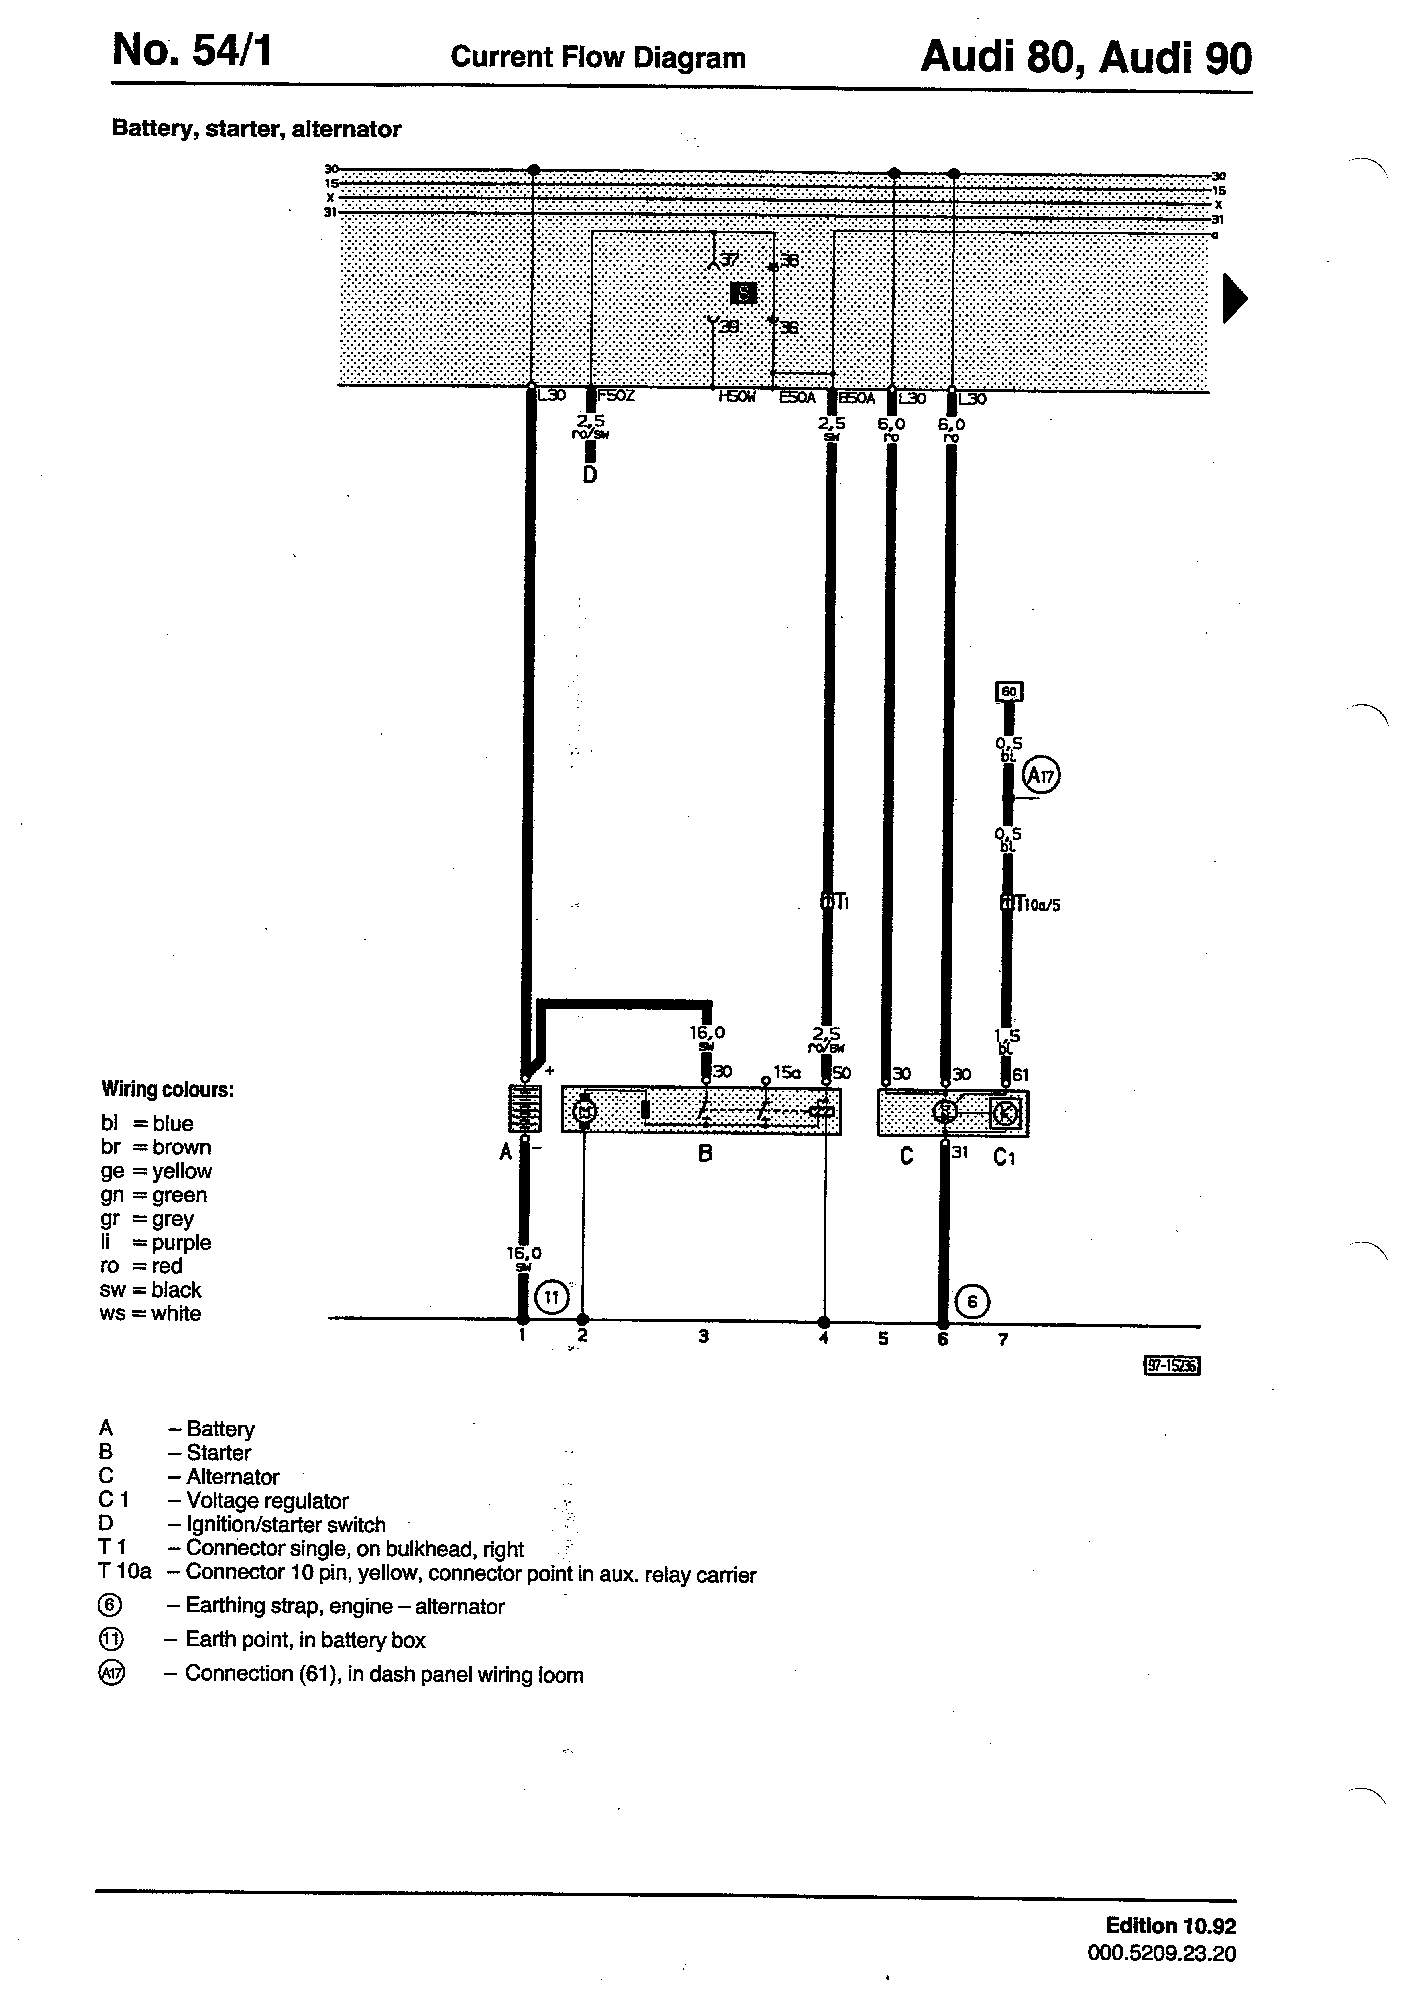 hight resolution of ignition starter switch d